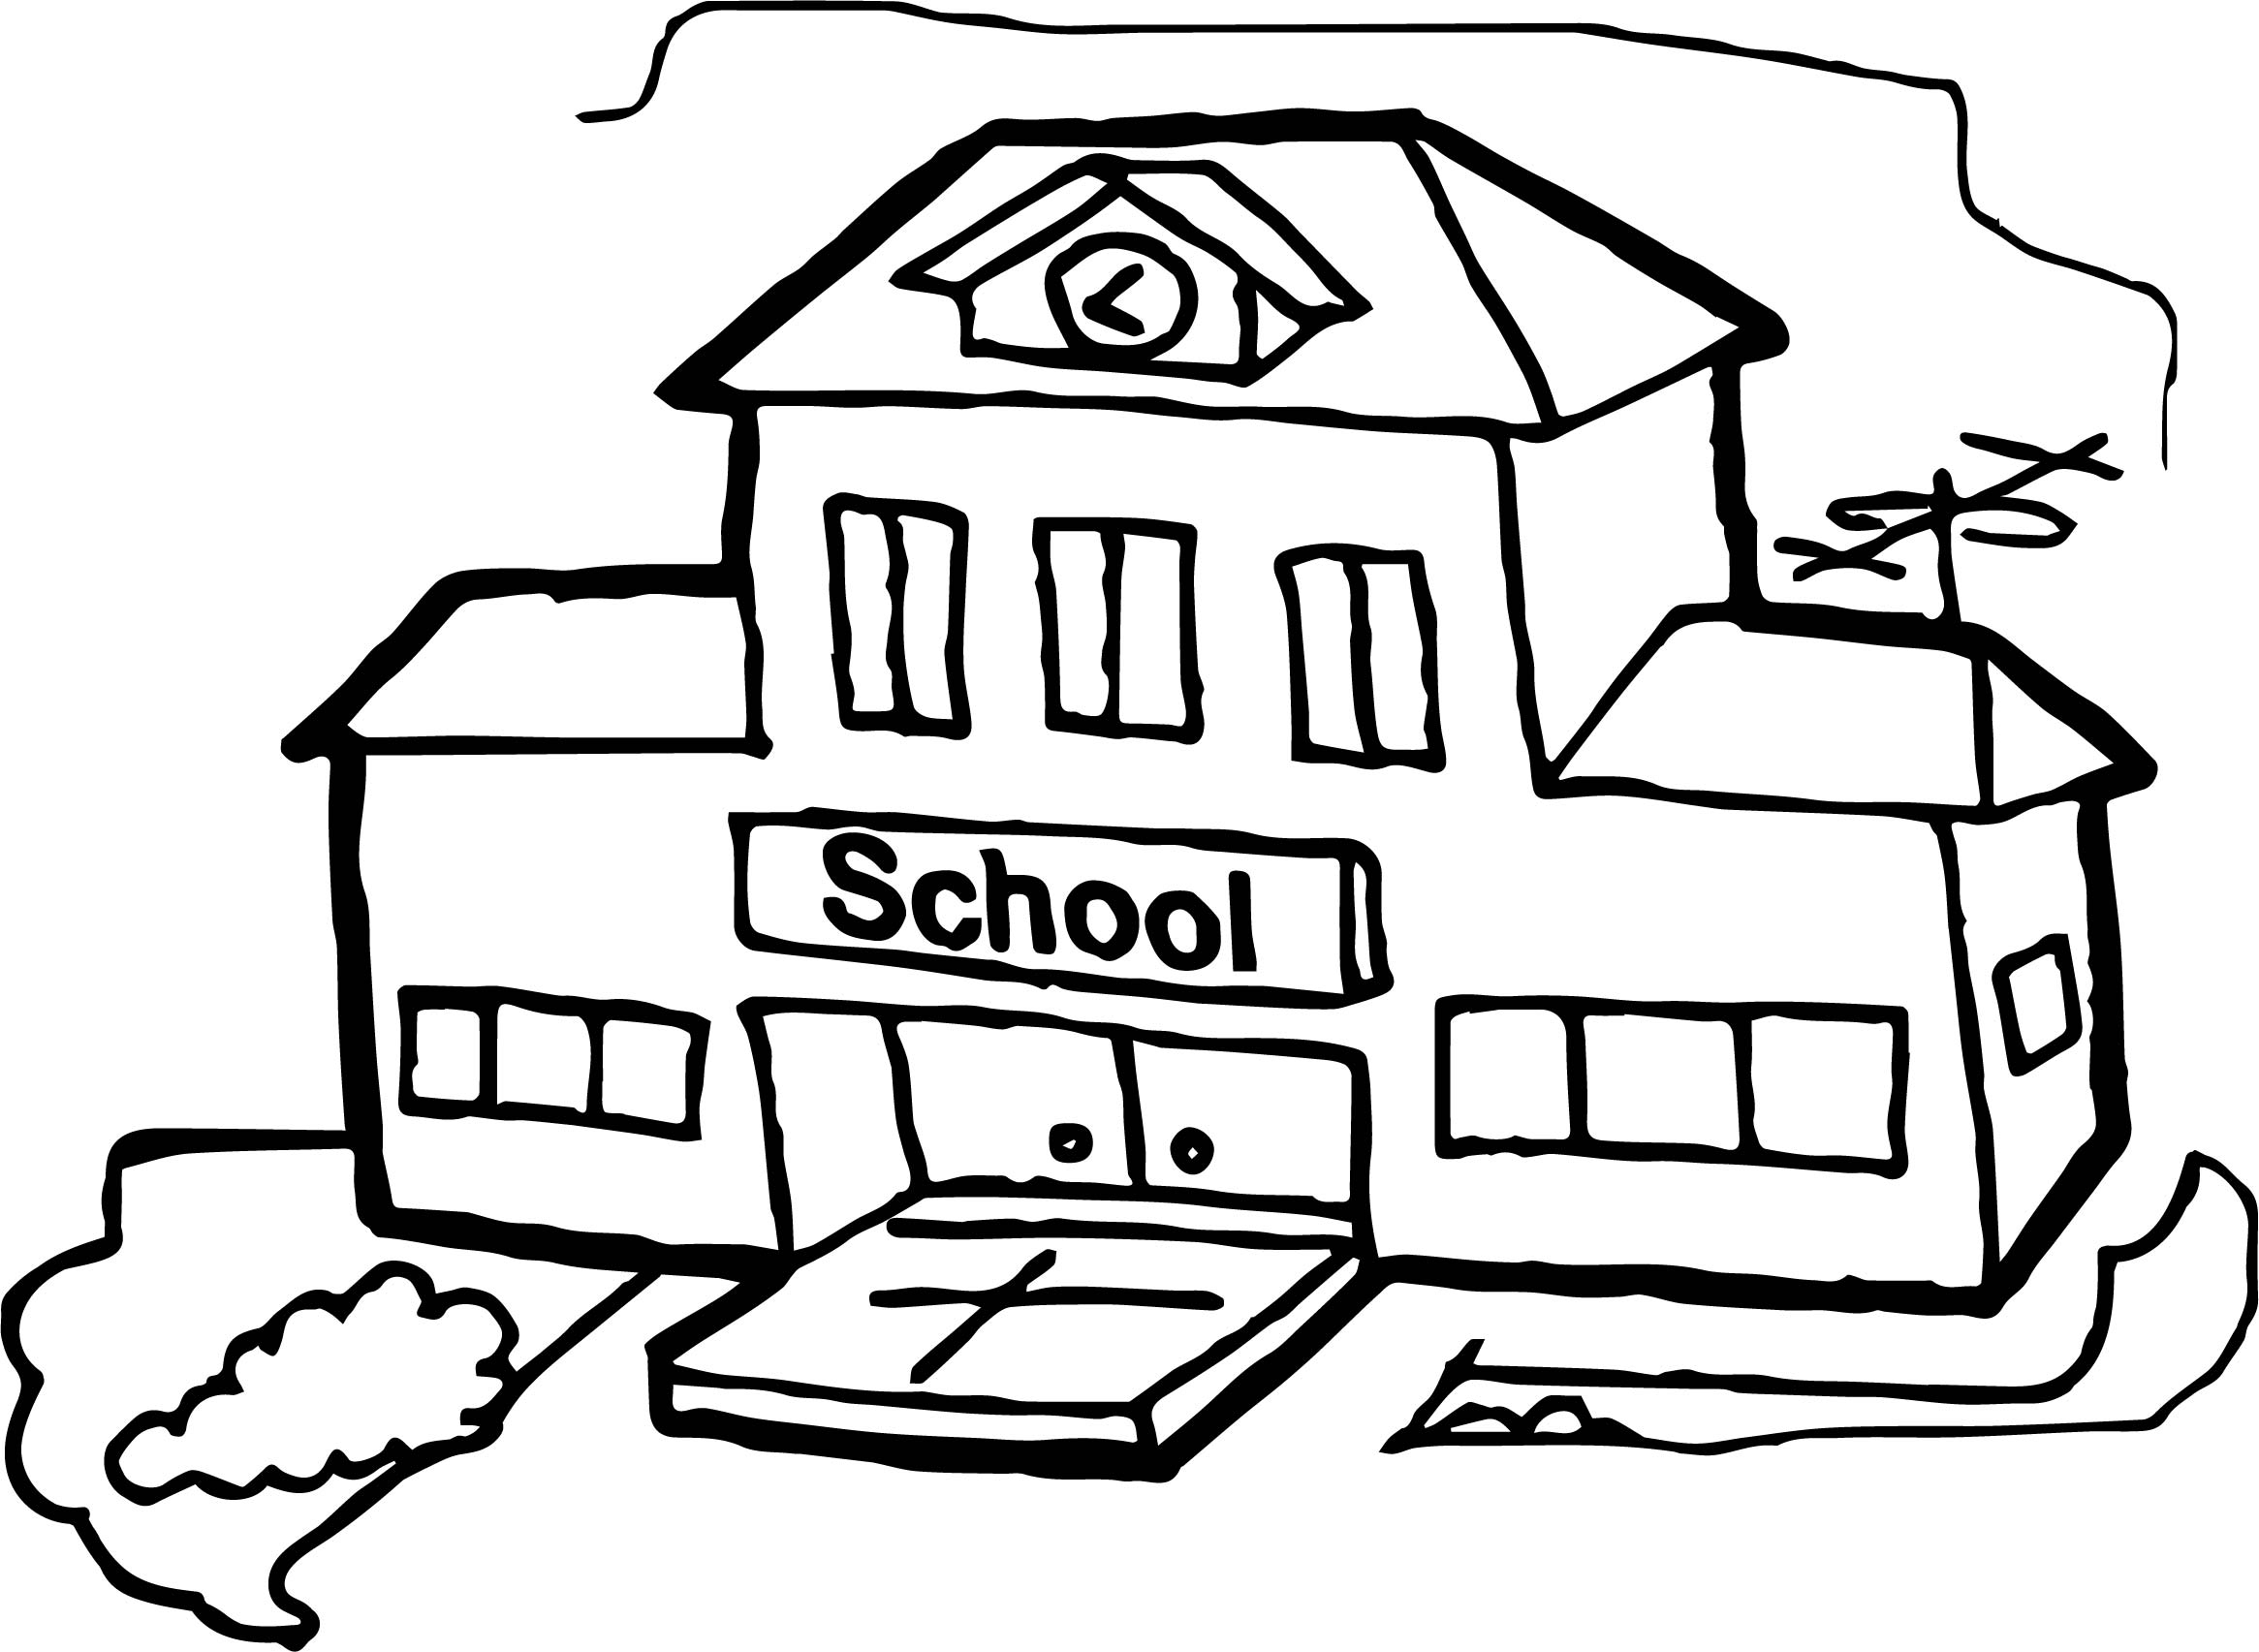 Simple School House Coloring Pages Real Pictures Of Rudolph the Red Collection Of School House Coloring Pages to Print